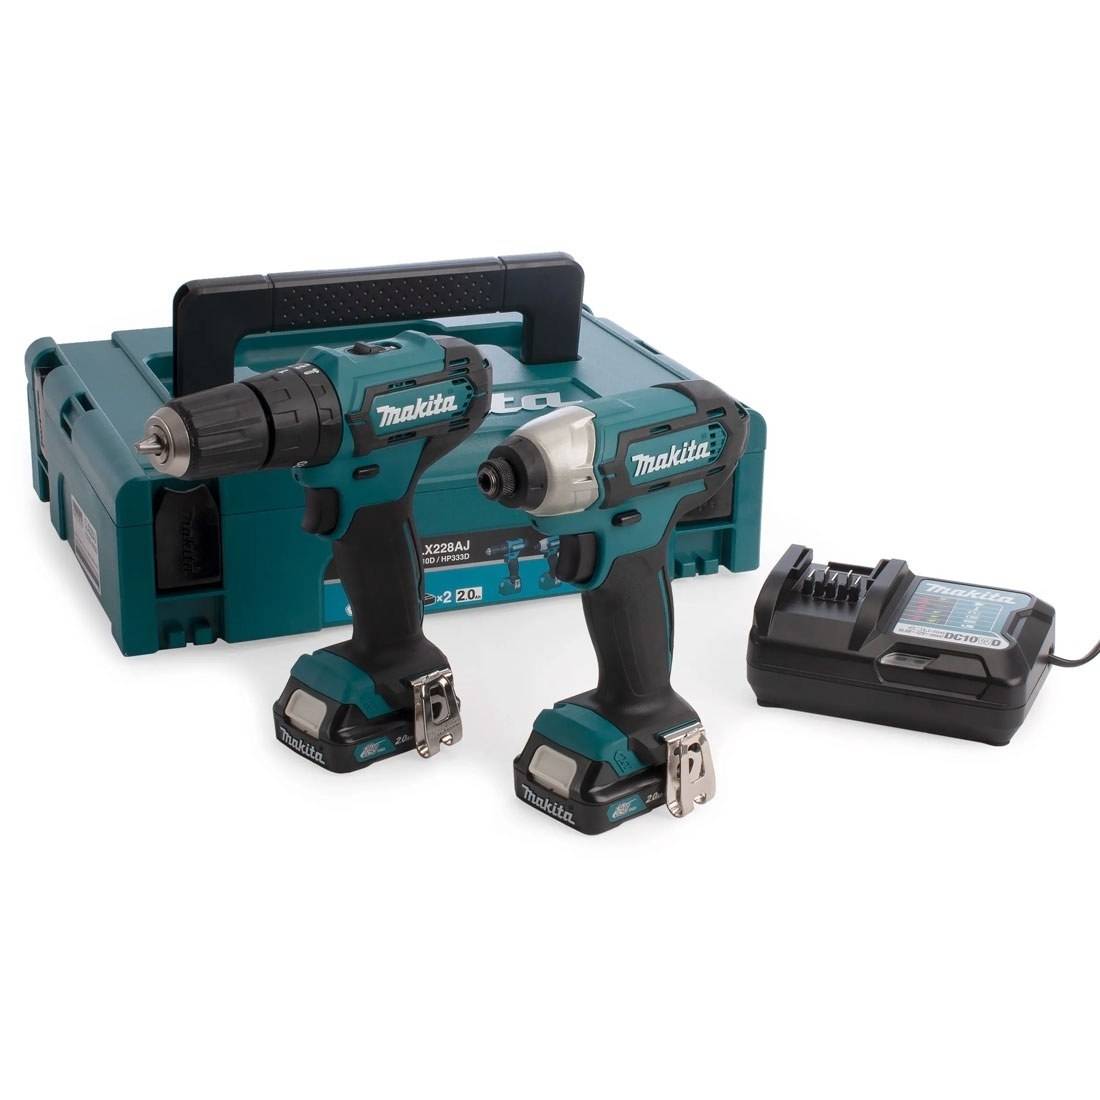 Makita 10.8v Drill Driver /& Impact Twin Pack With 2 x 2.0Ah Batt and Carry Case